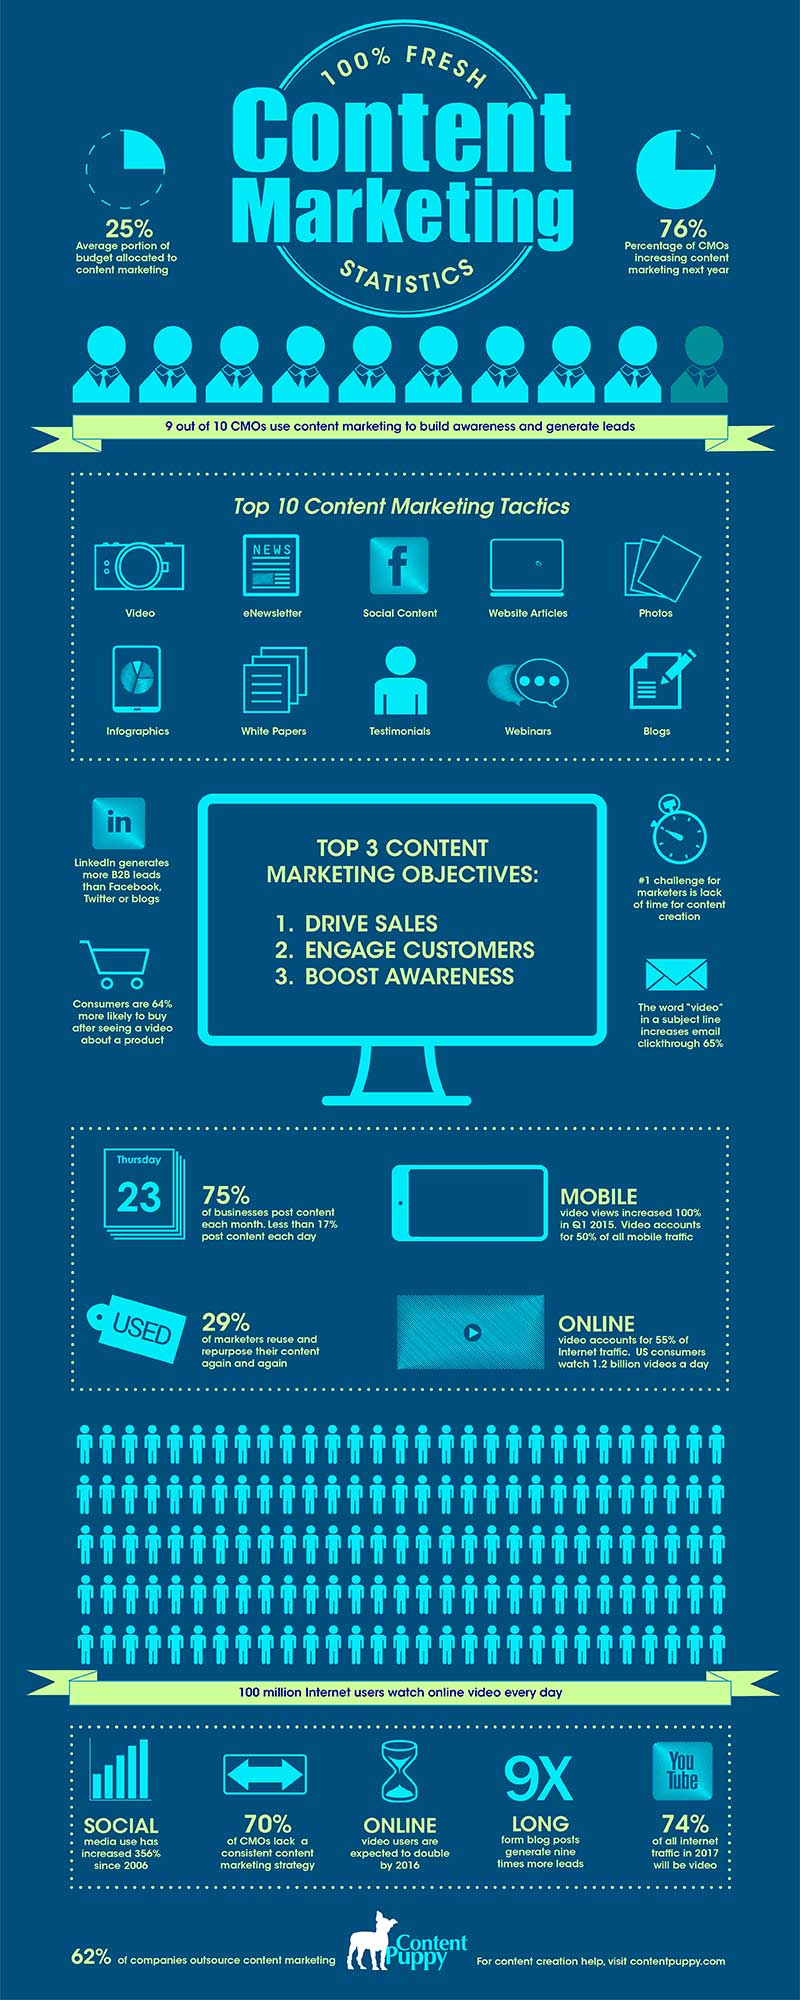 This content marketing infographic was designed to promote Content Puppy